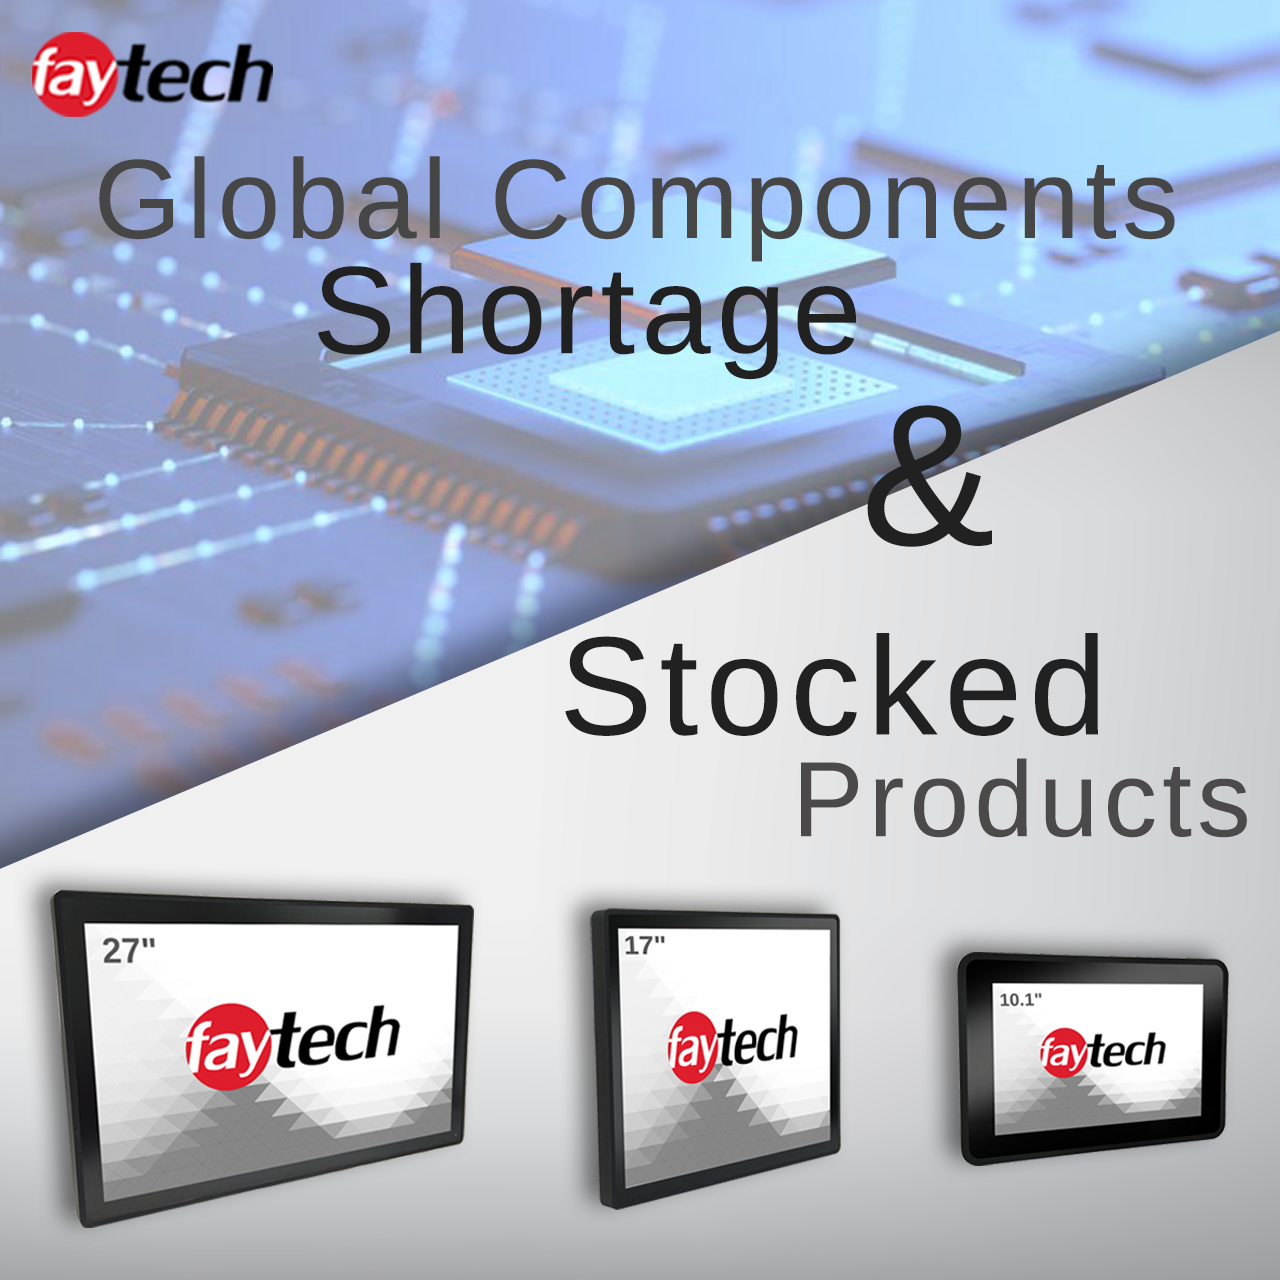 Global Components Shortage & Stocked Products